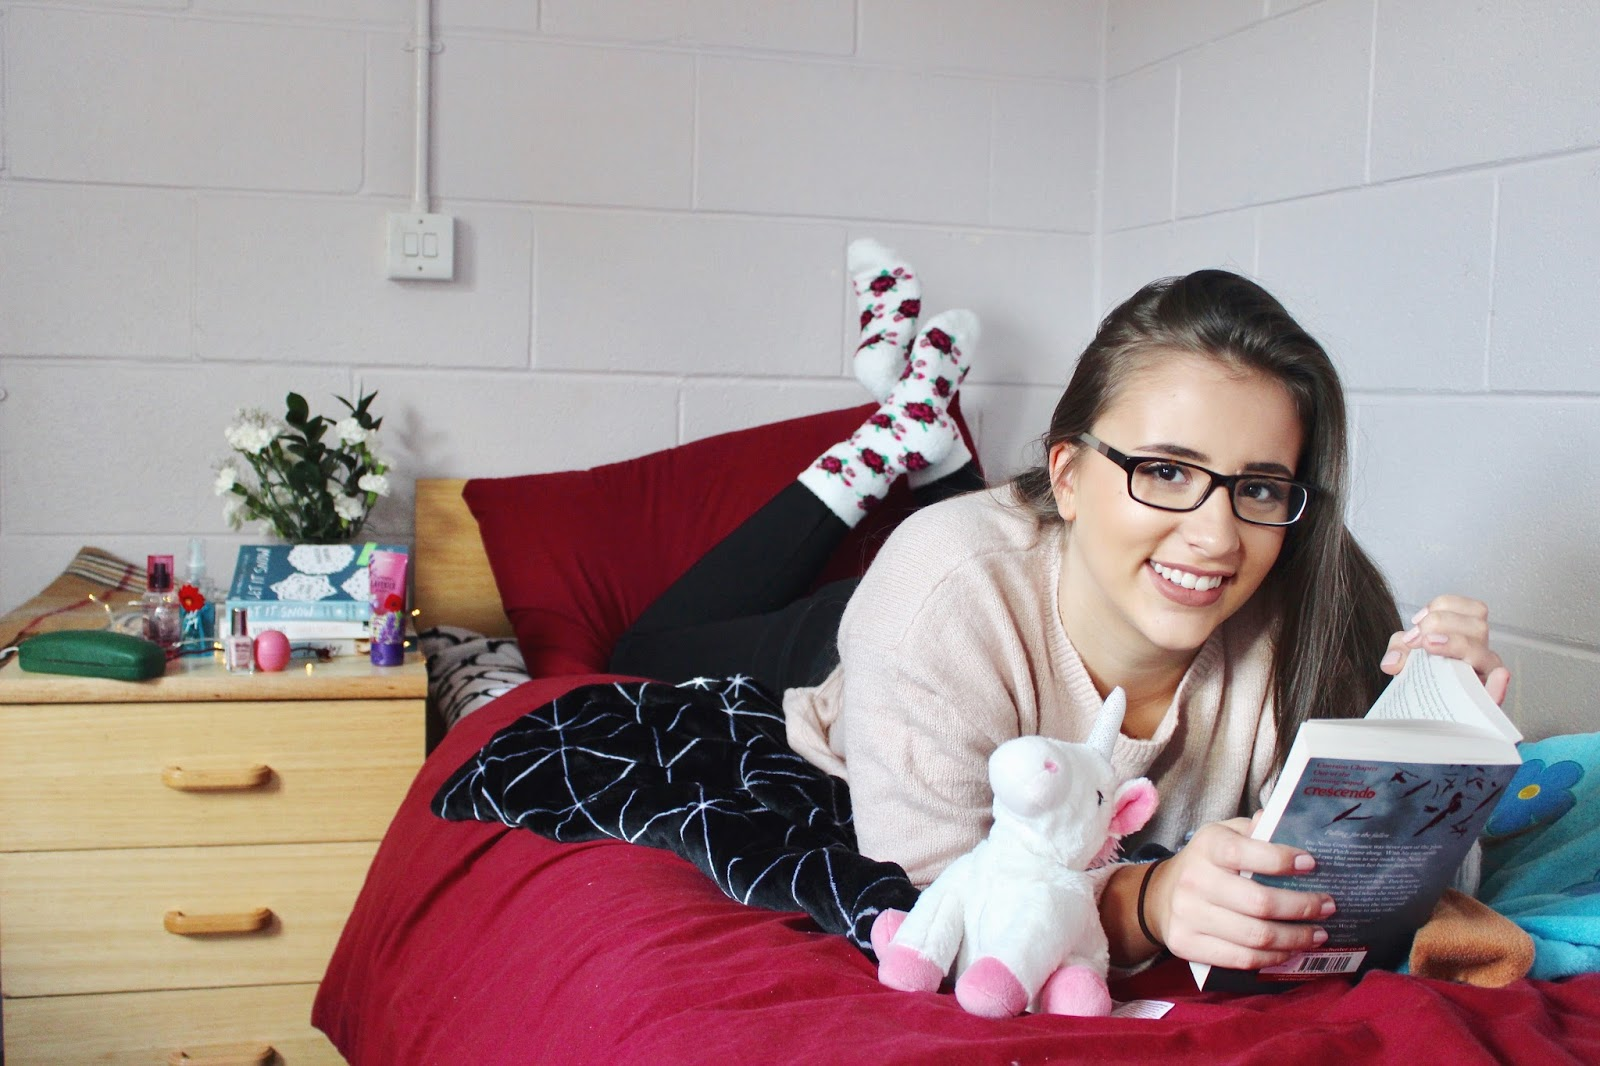 Girl laying on bed smiling and reading a book